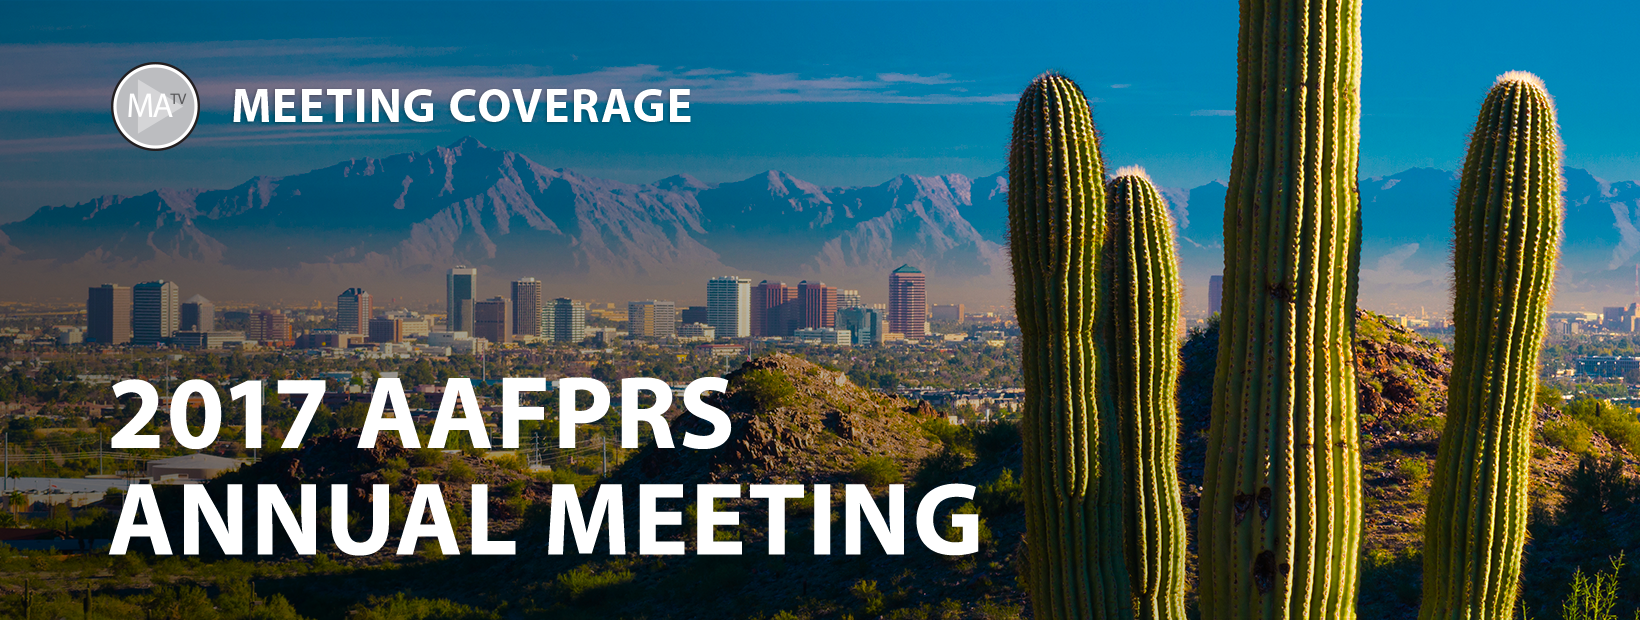 AAFPRS Annual Meeting 2017